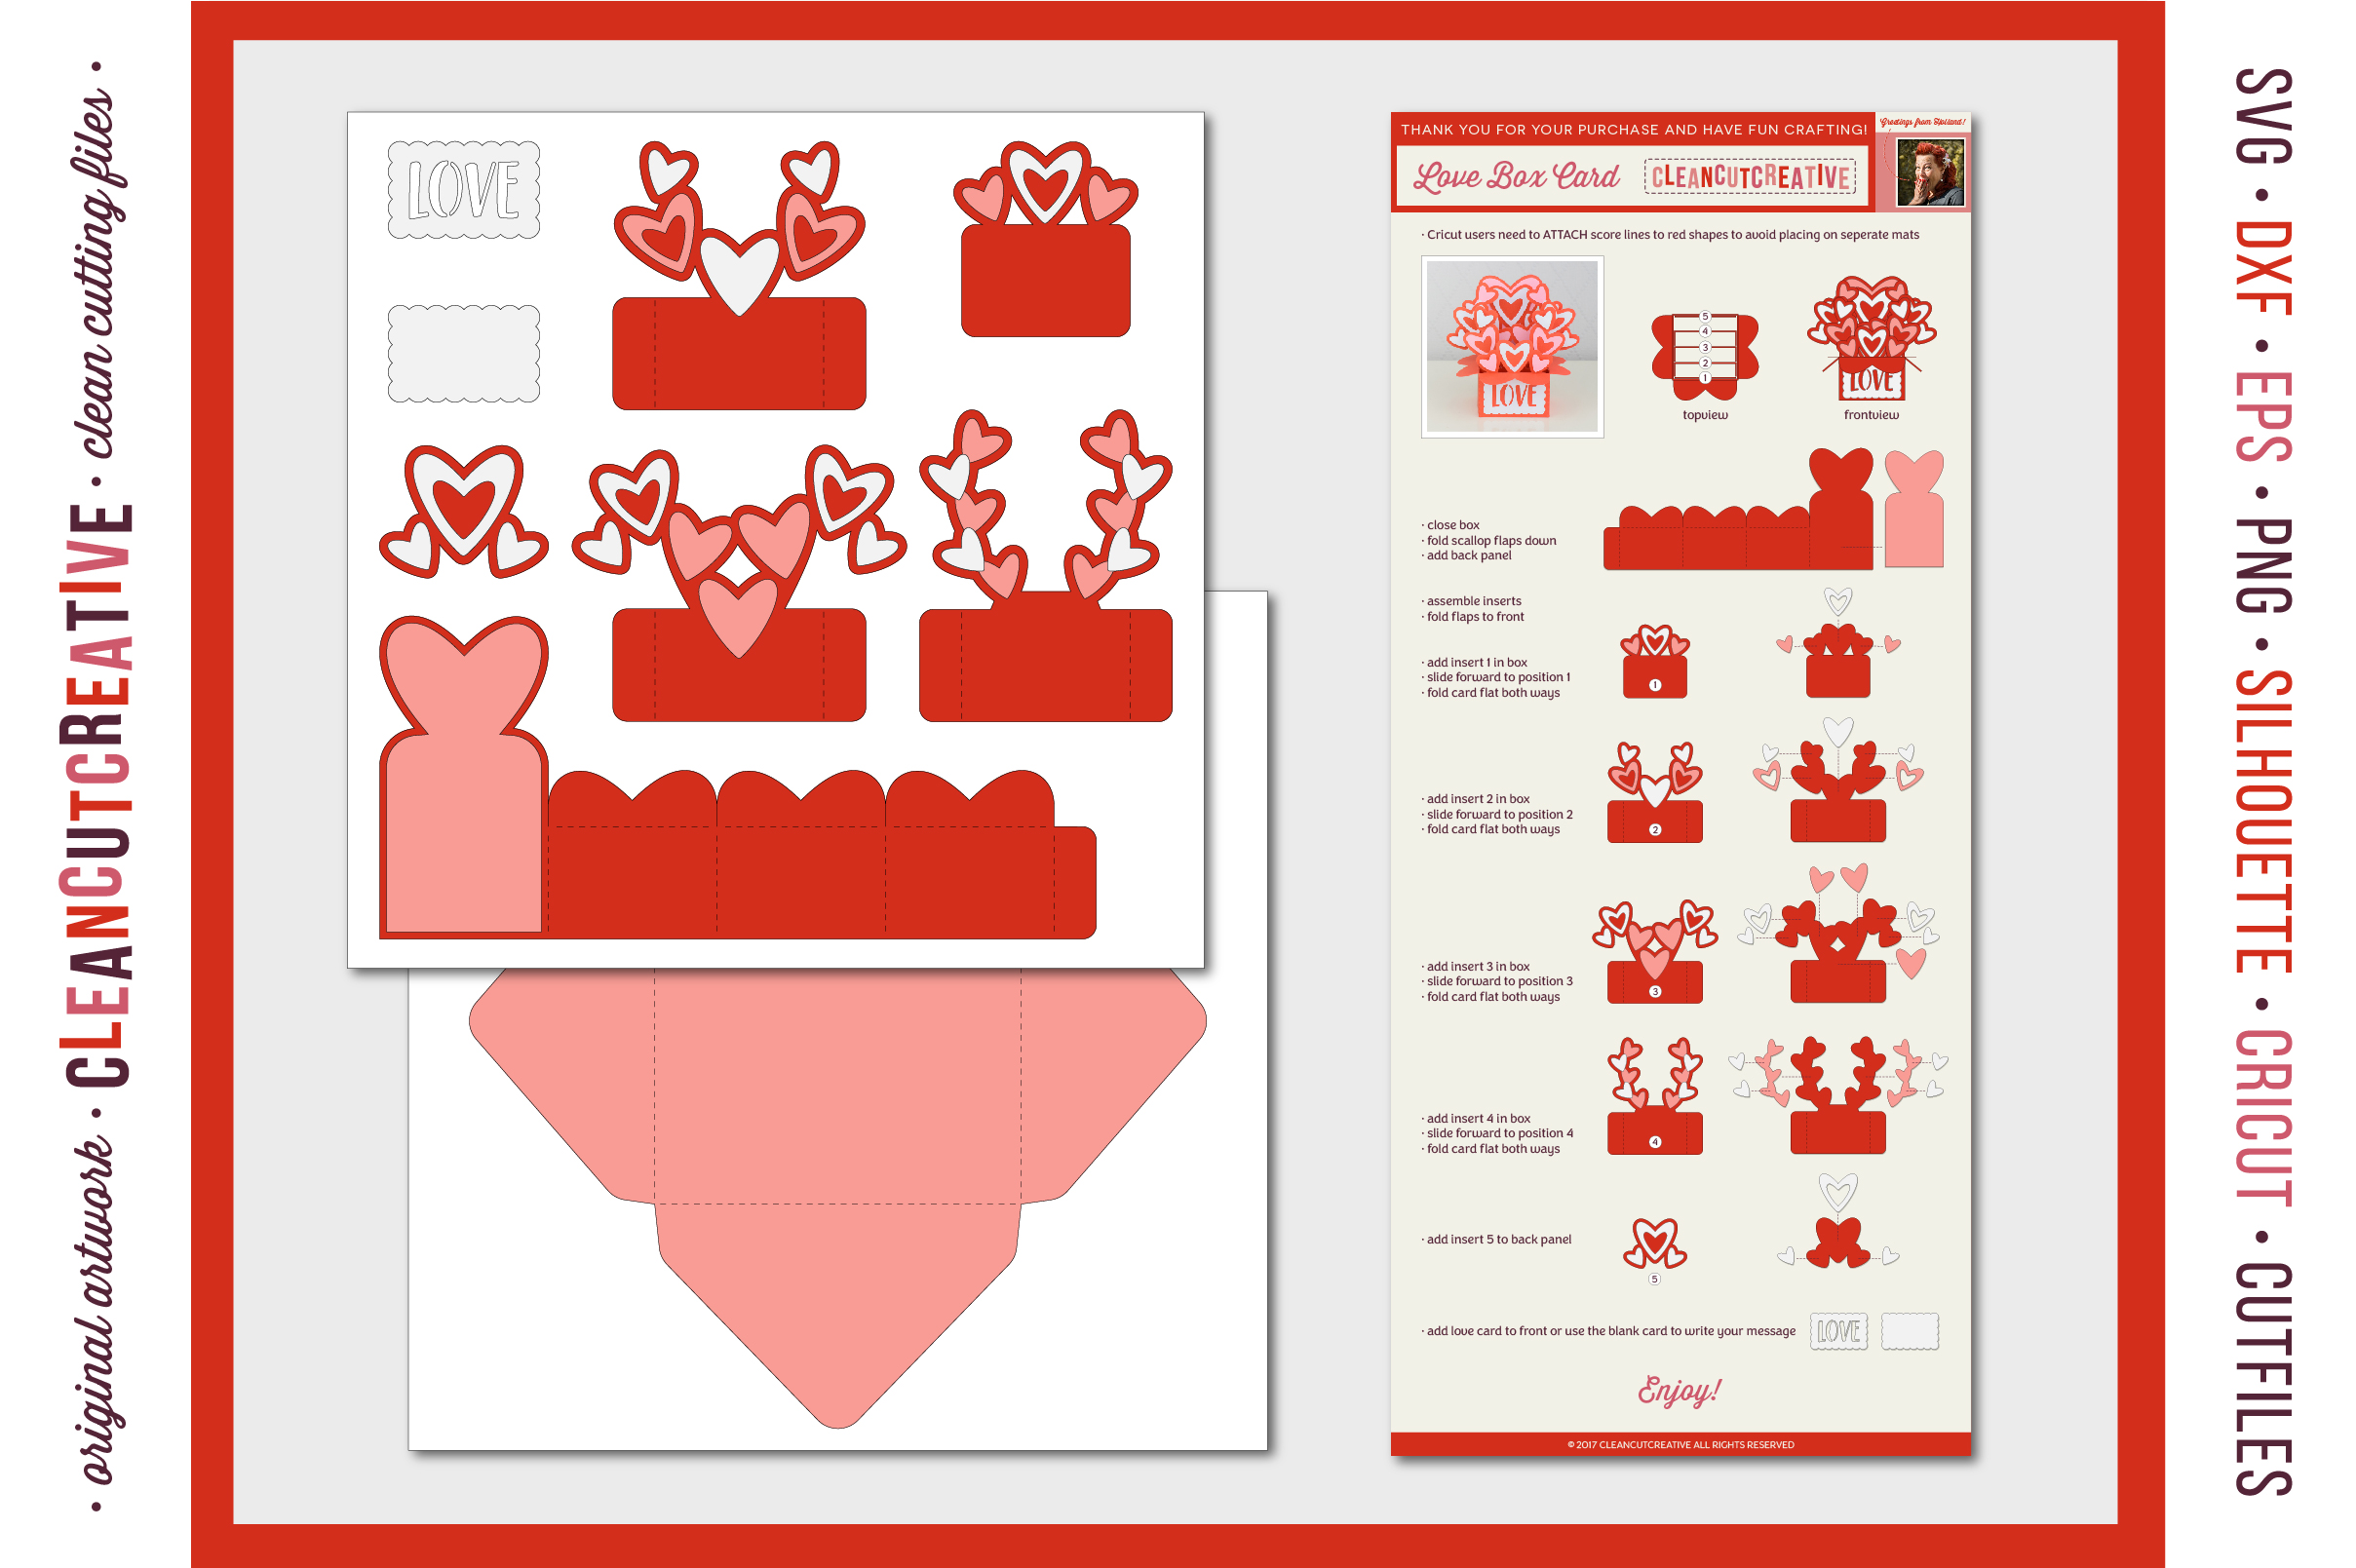 Love Box Card Valentine Card in a Box with cute hearts - SVG DXF EPS PNG - for Cricut & Silhouette - clean cutting files example image 5